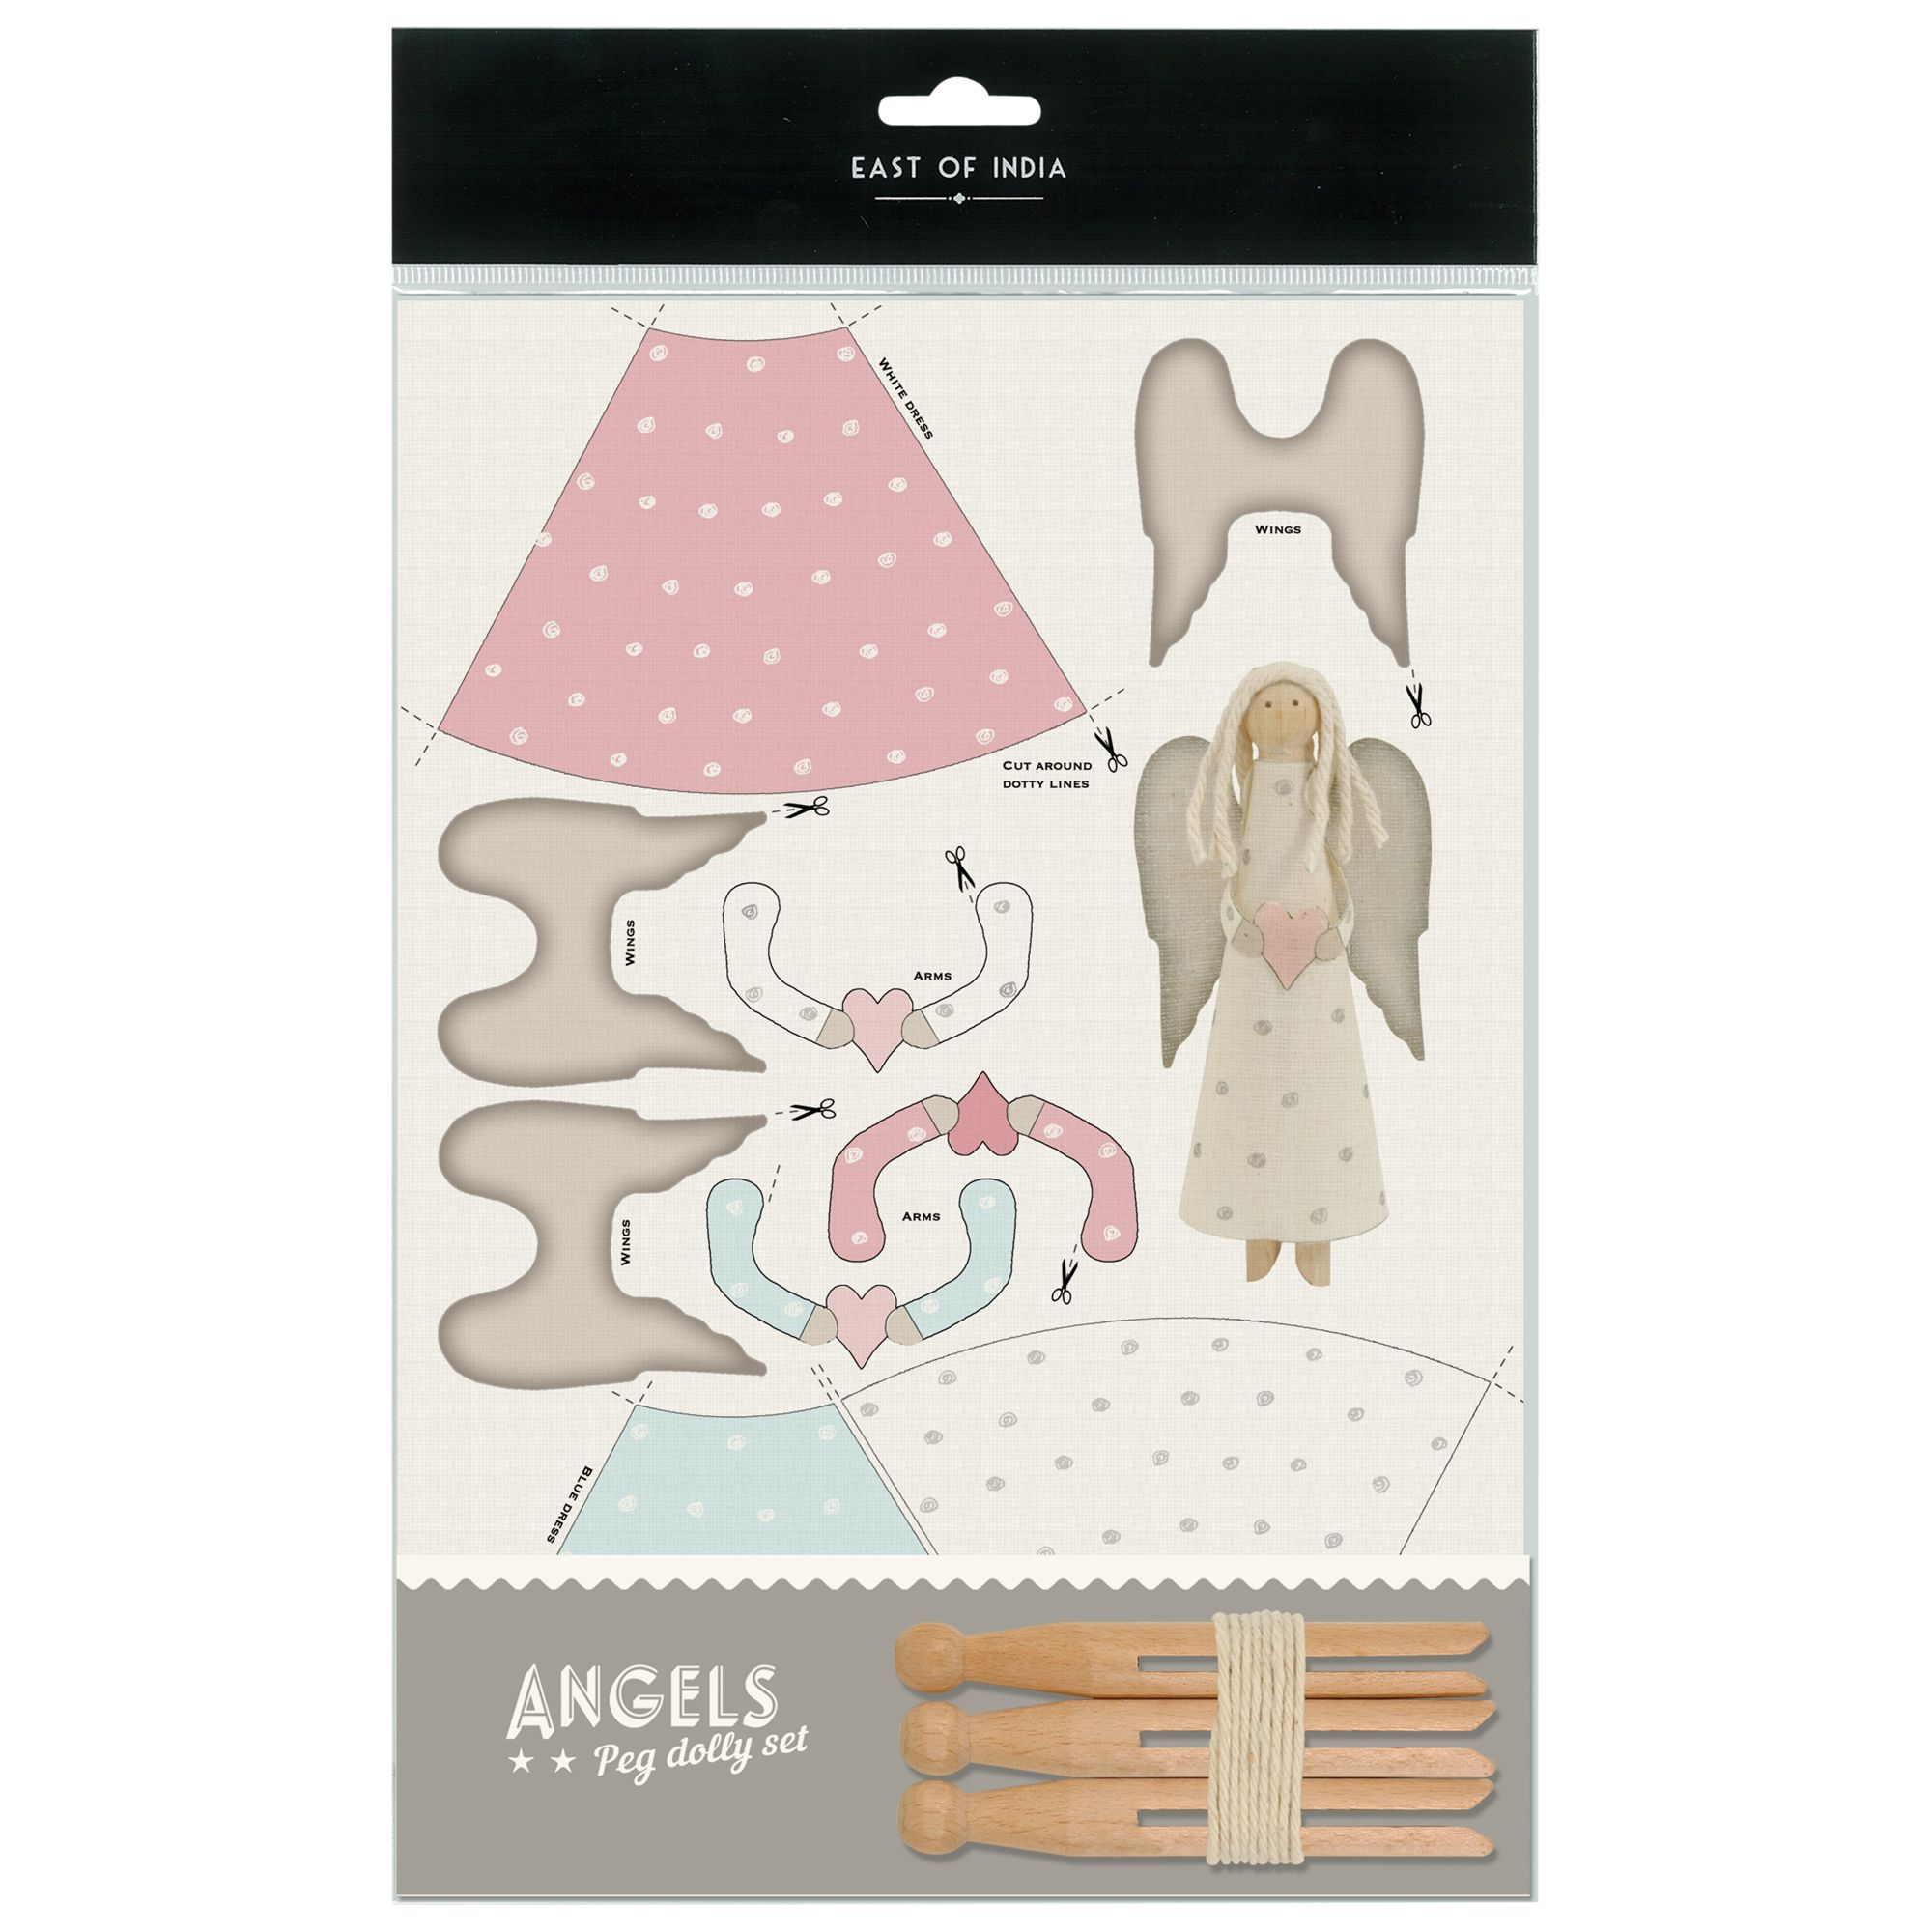 East of India East of India Dolly Peg Rustic Angels Kit